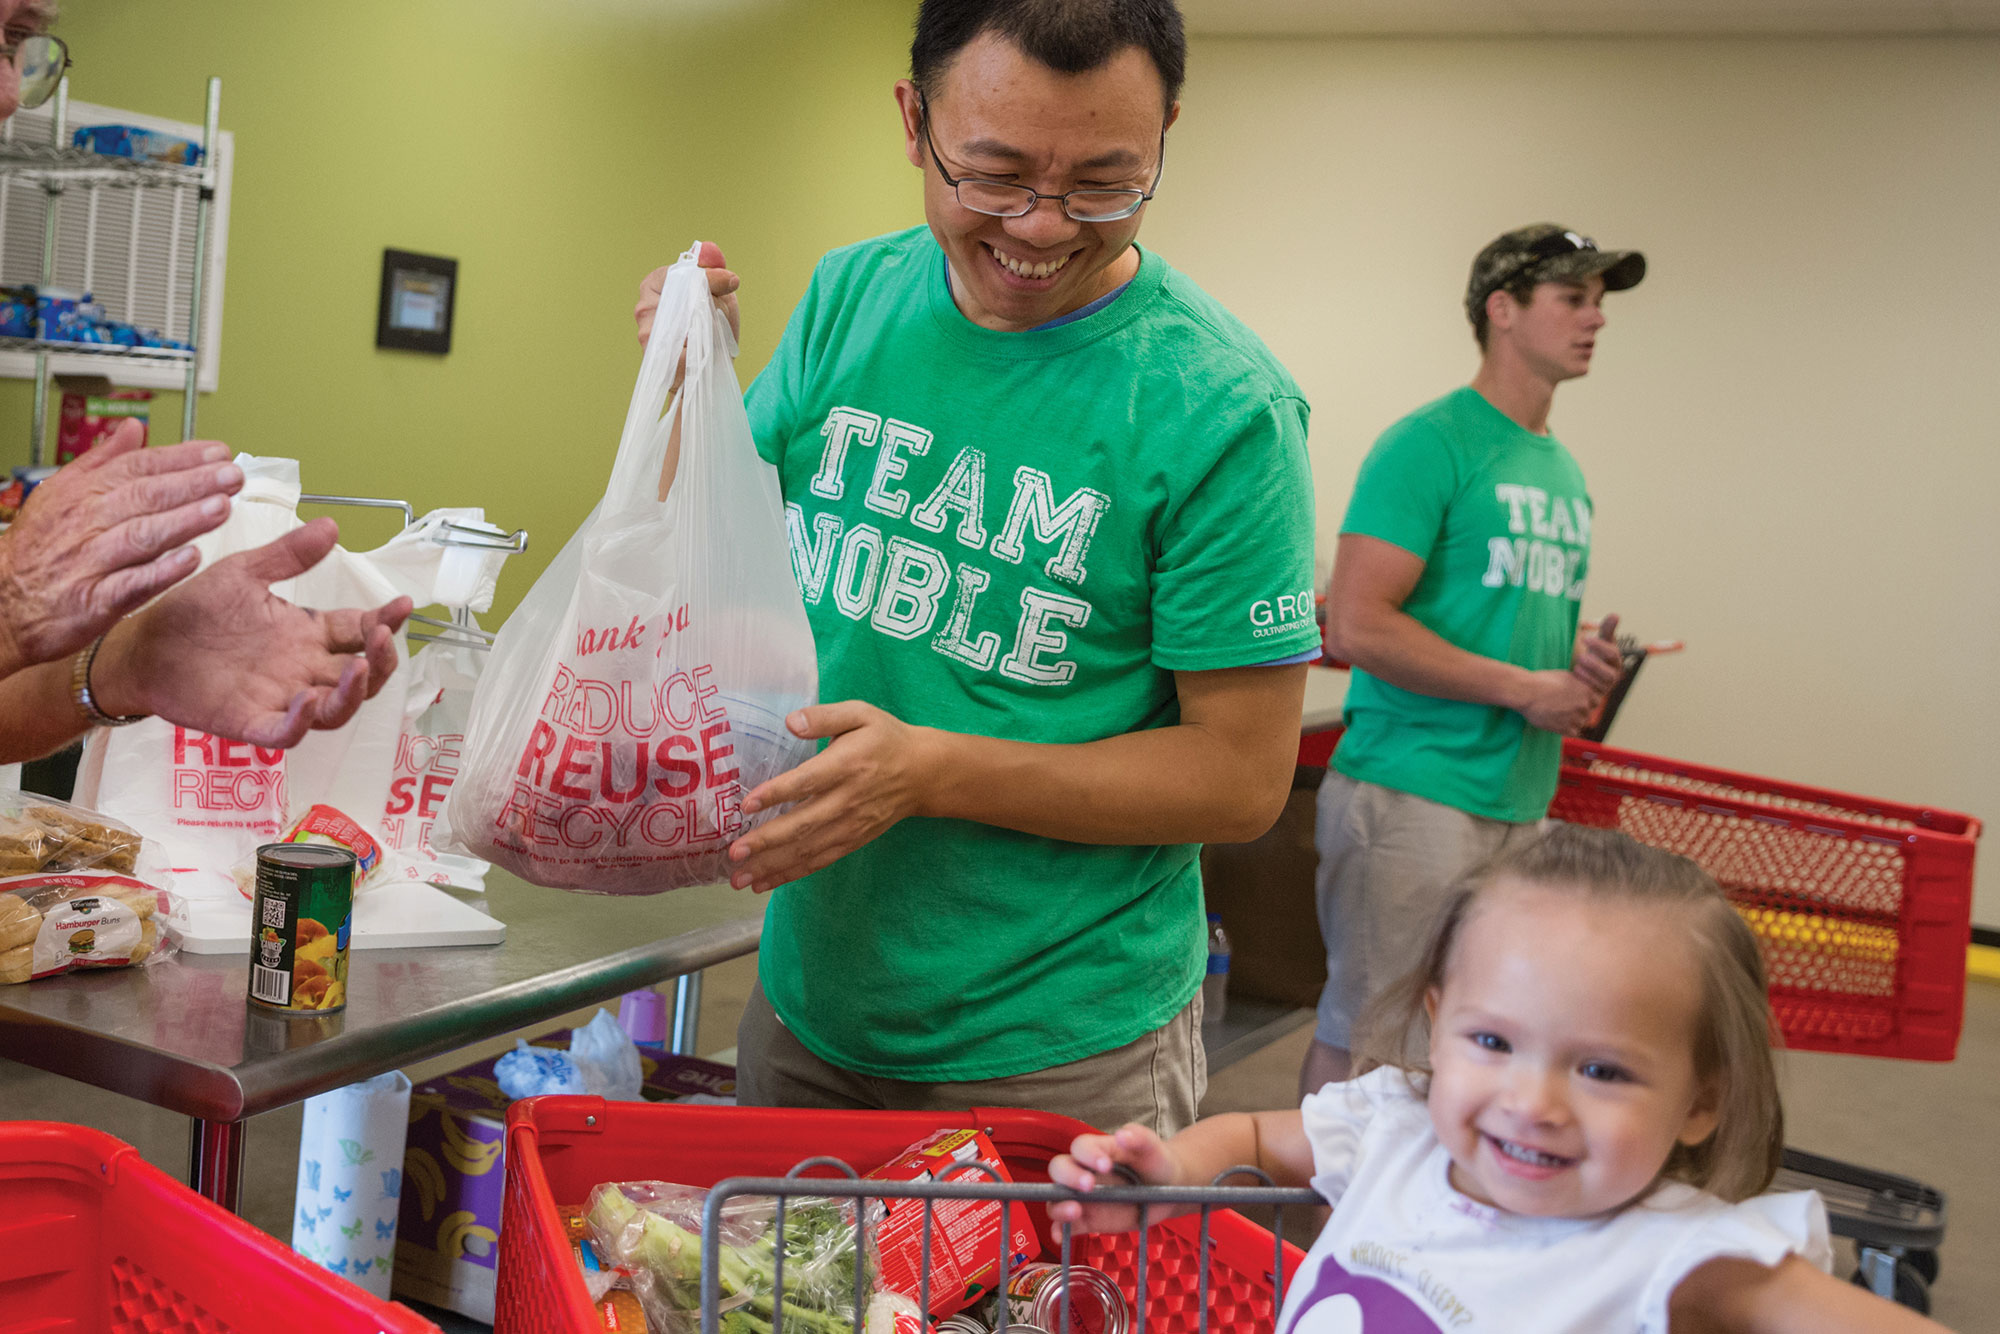 Maofeng Chai, Ph.D. and Landon Riggle help families shop and bag their food selections to take home.